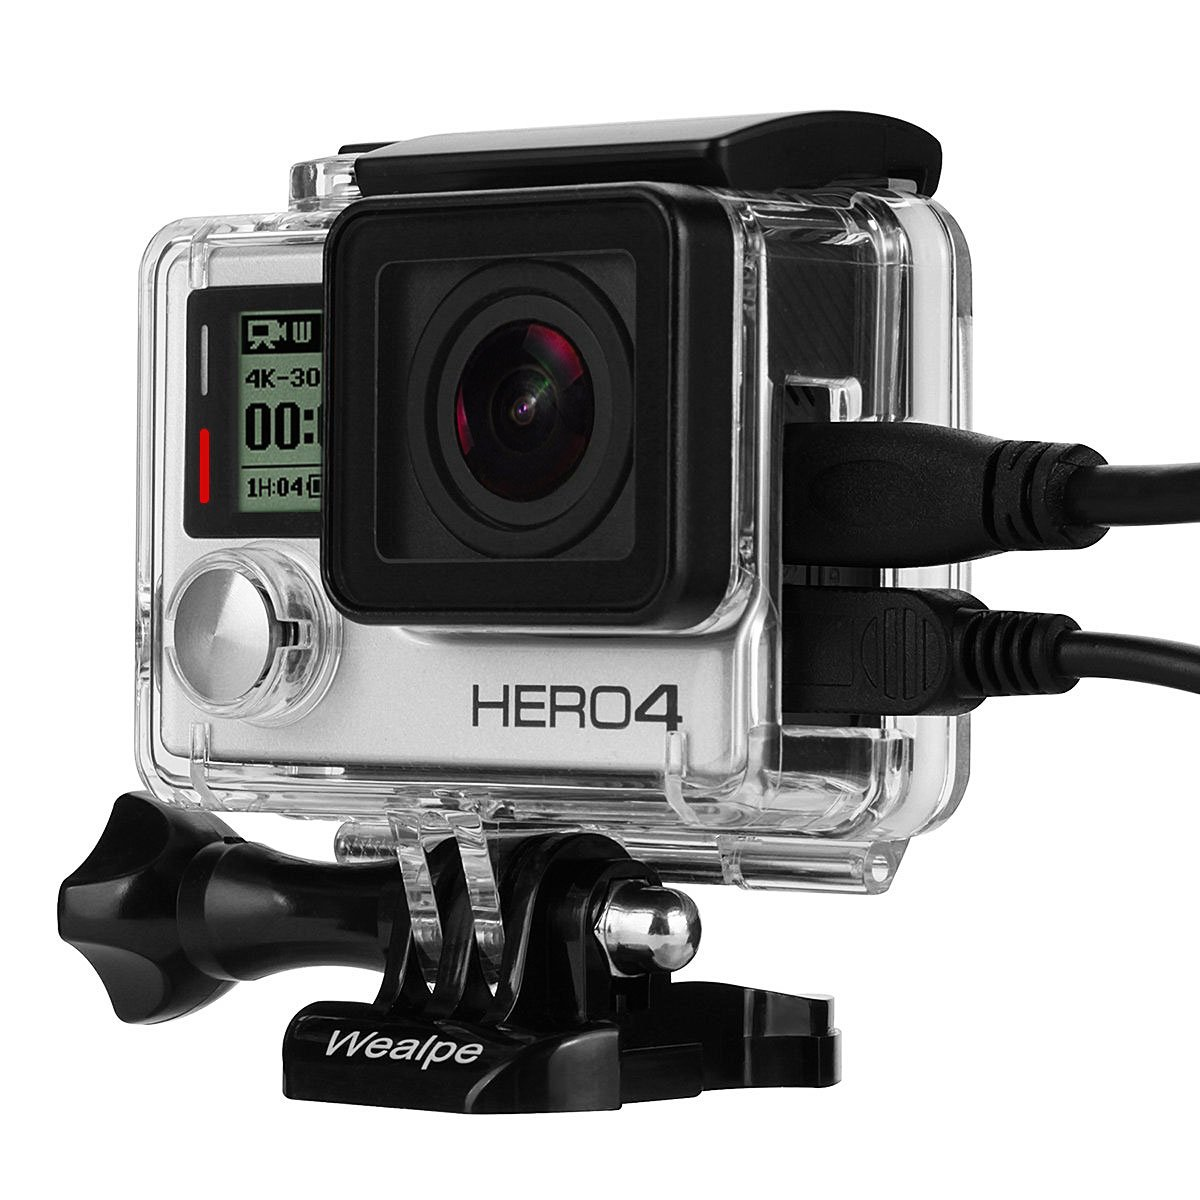 Wealpe Skeleton Housing Case Side Open Protective Housing with LCD Touch Backdoor for GoPro Hero 4, 3+, 3 Cameras